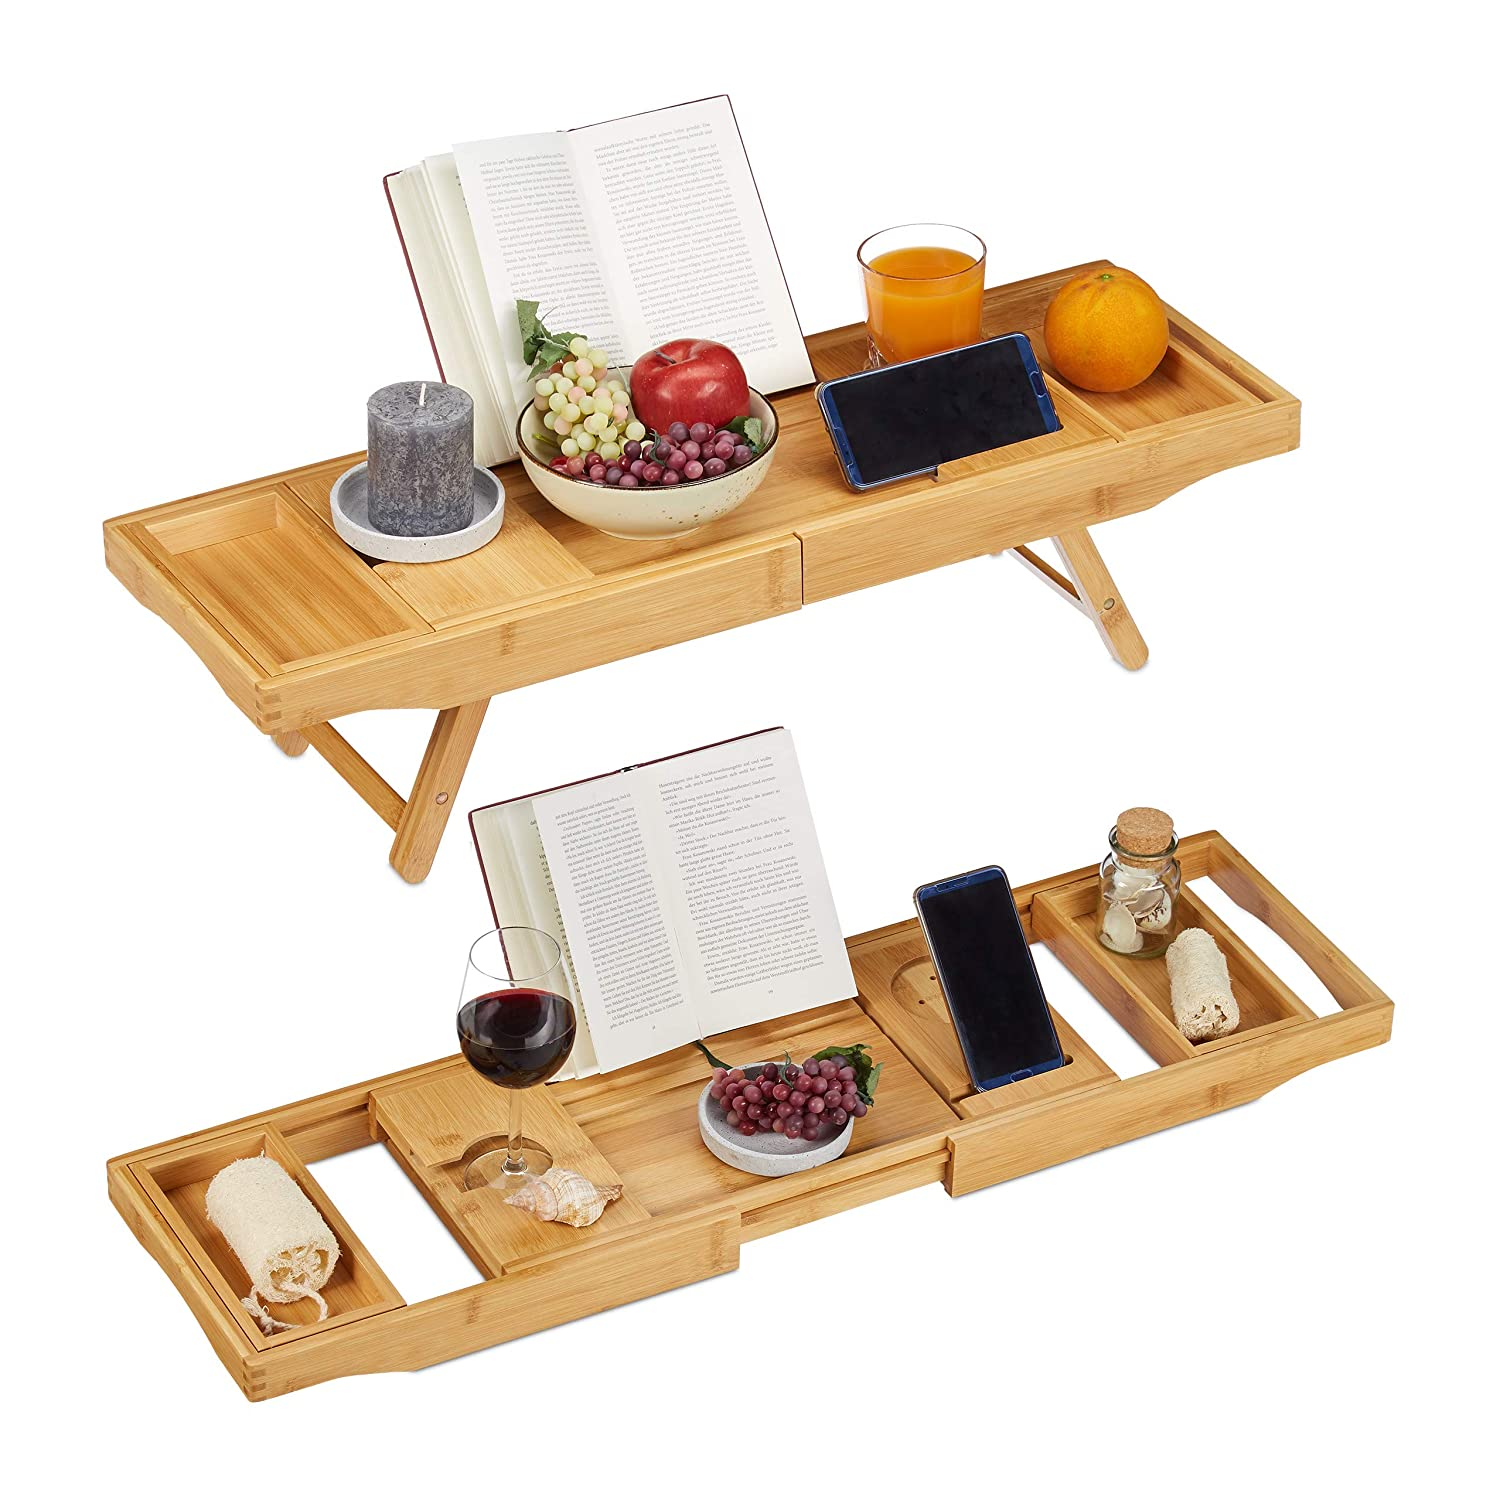 Natural Relaxdays 2in1 Bamboo Bathtub Caddy /& Serving Tray Wine Holder 18 x 114 x 25 cm Bathroom Stand H x B x T: ca Extendible 74.5-114 cm Bookstand